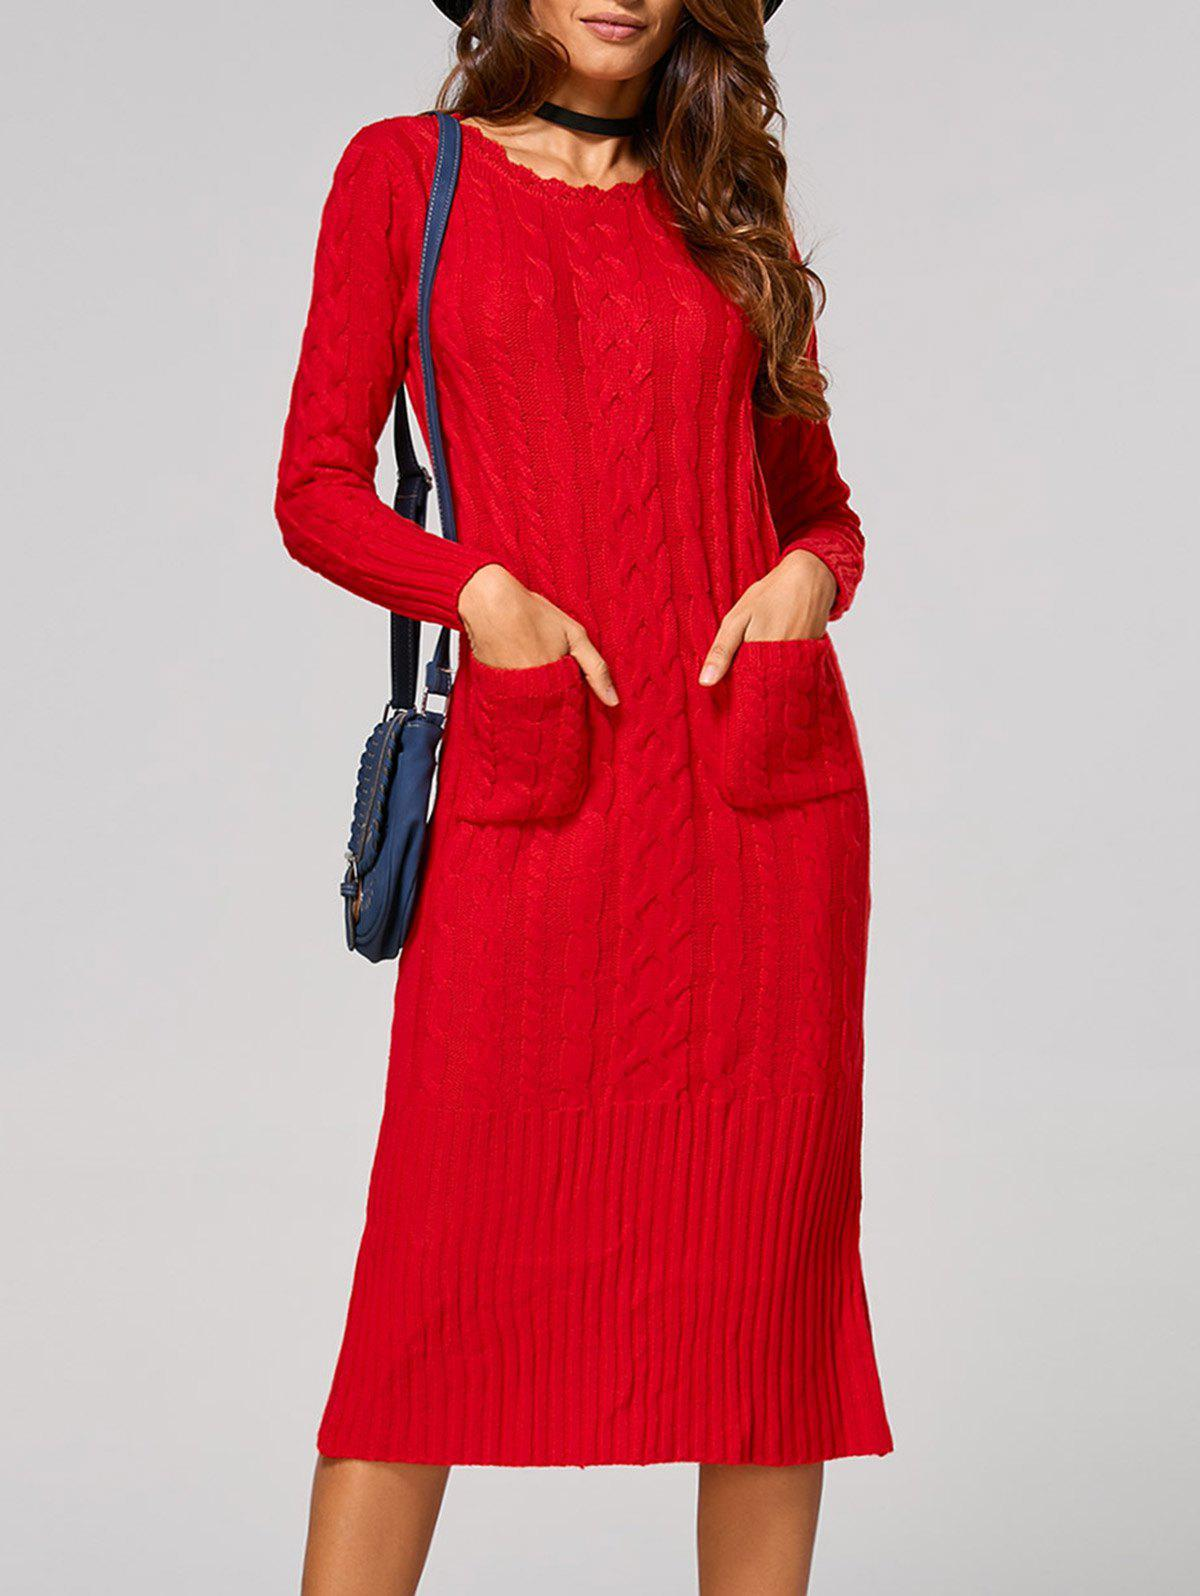 Cable Knit Back Slit Longline Sweater Dress tommy hilfiger new women s medium m blue combo cable knit sweater dress $98 017